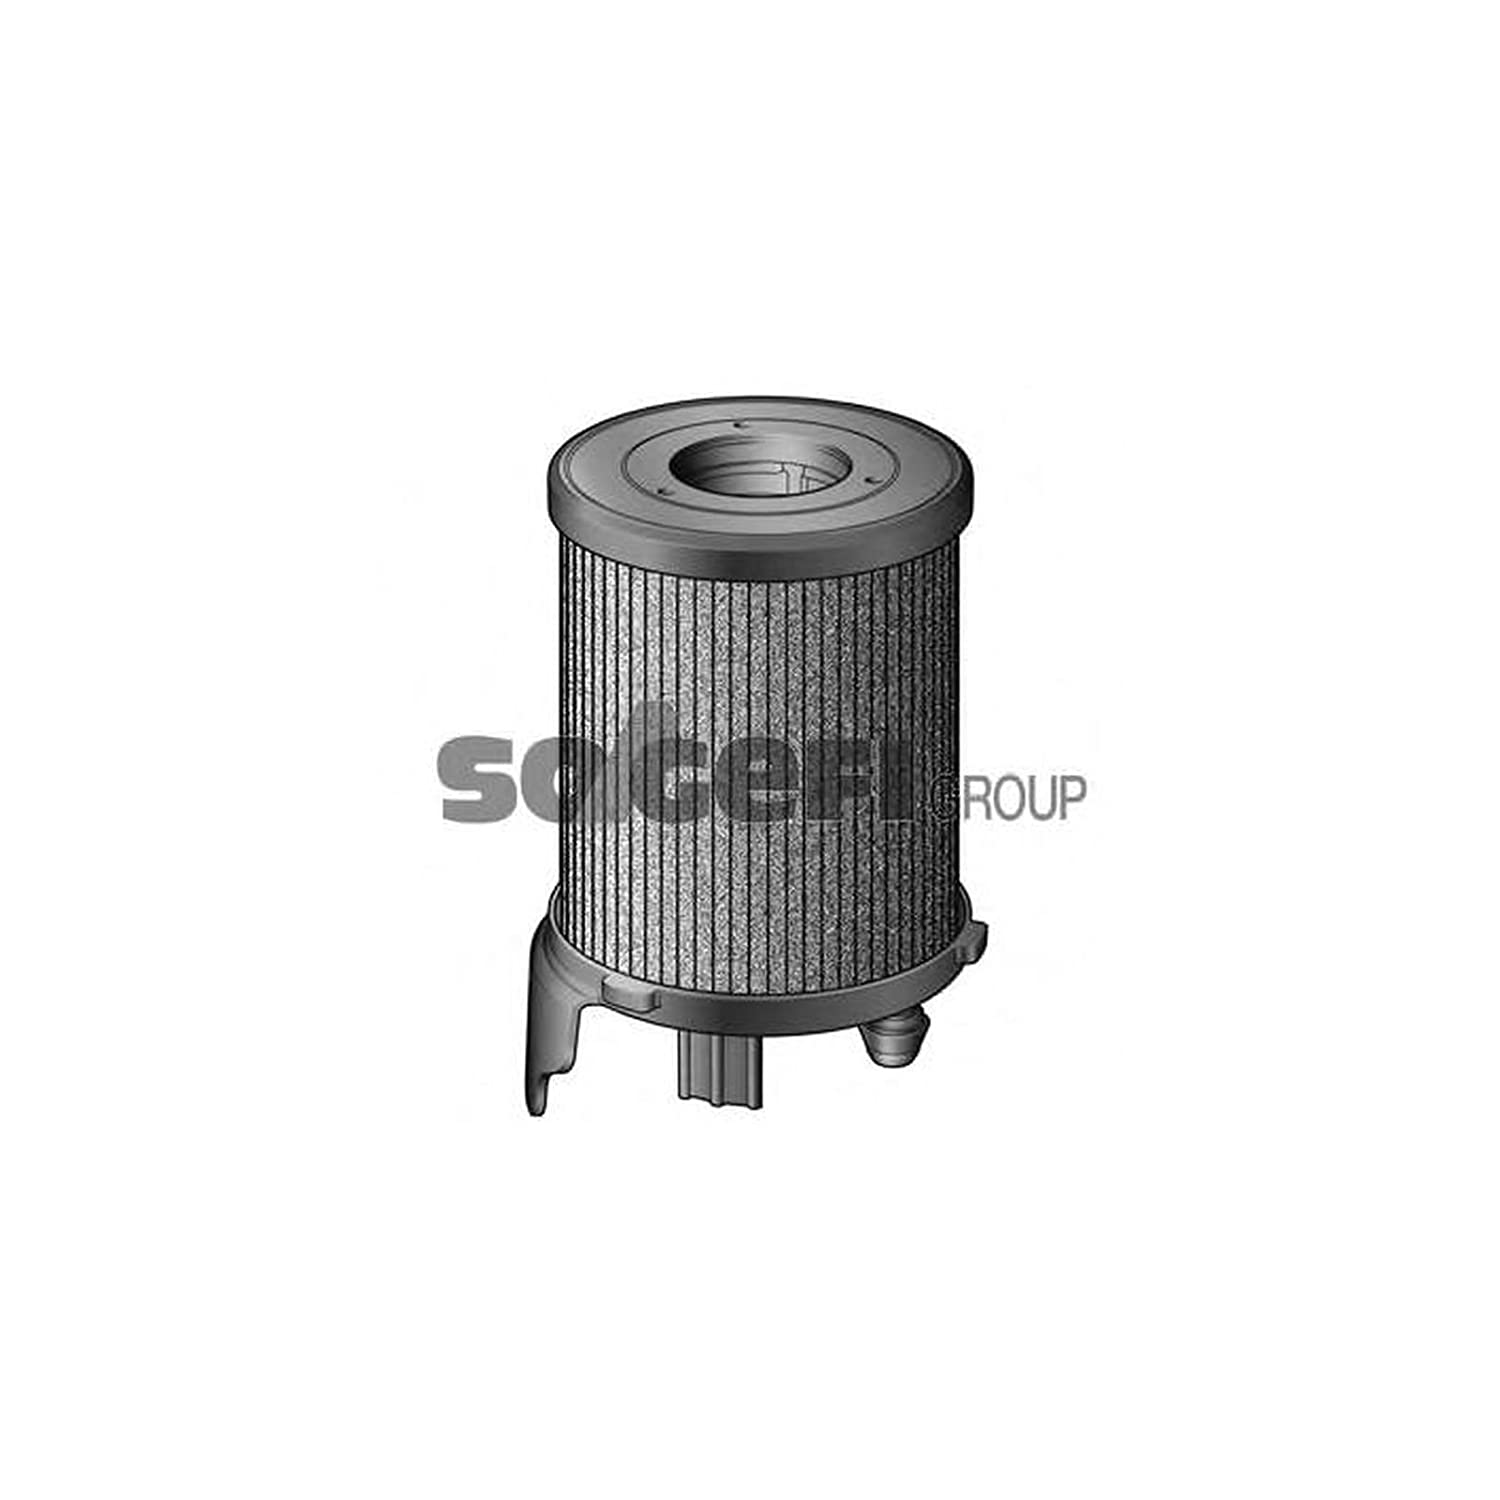 CITROEN Oil Filter Fram 1103N9 1103P0 1103S7 1109AY 1109S5 Quality Replacement